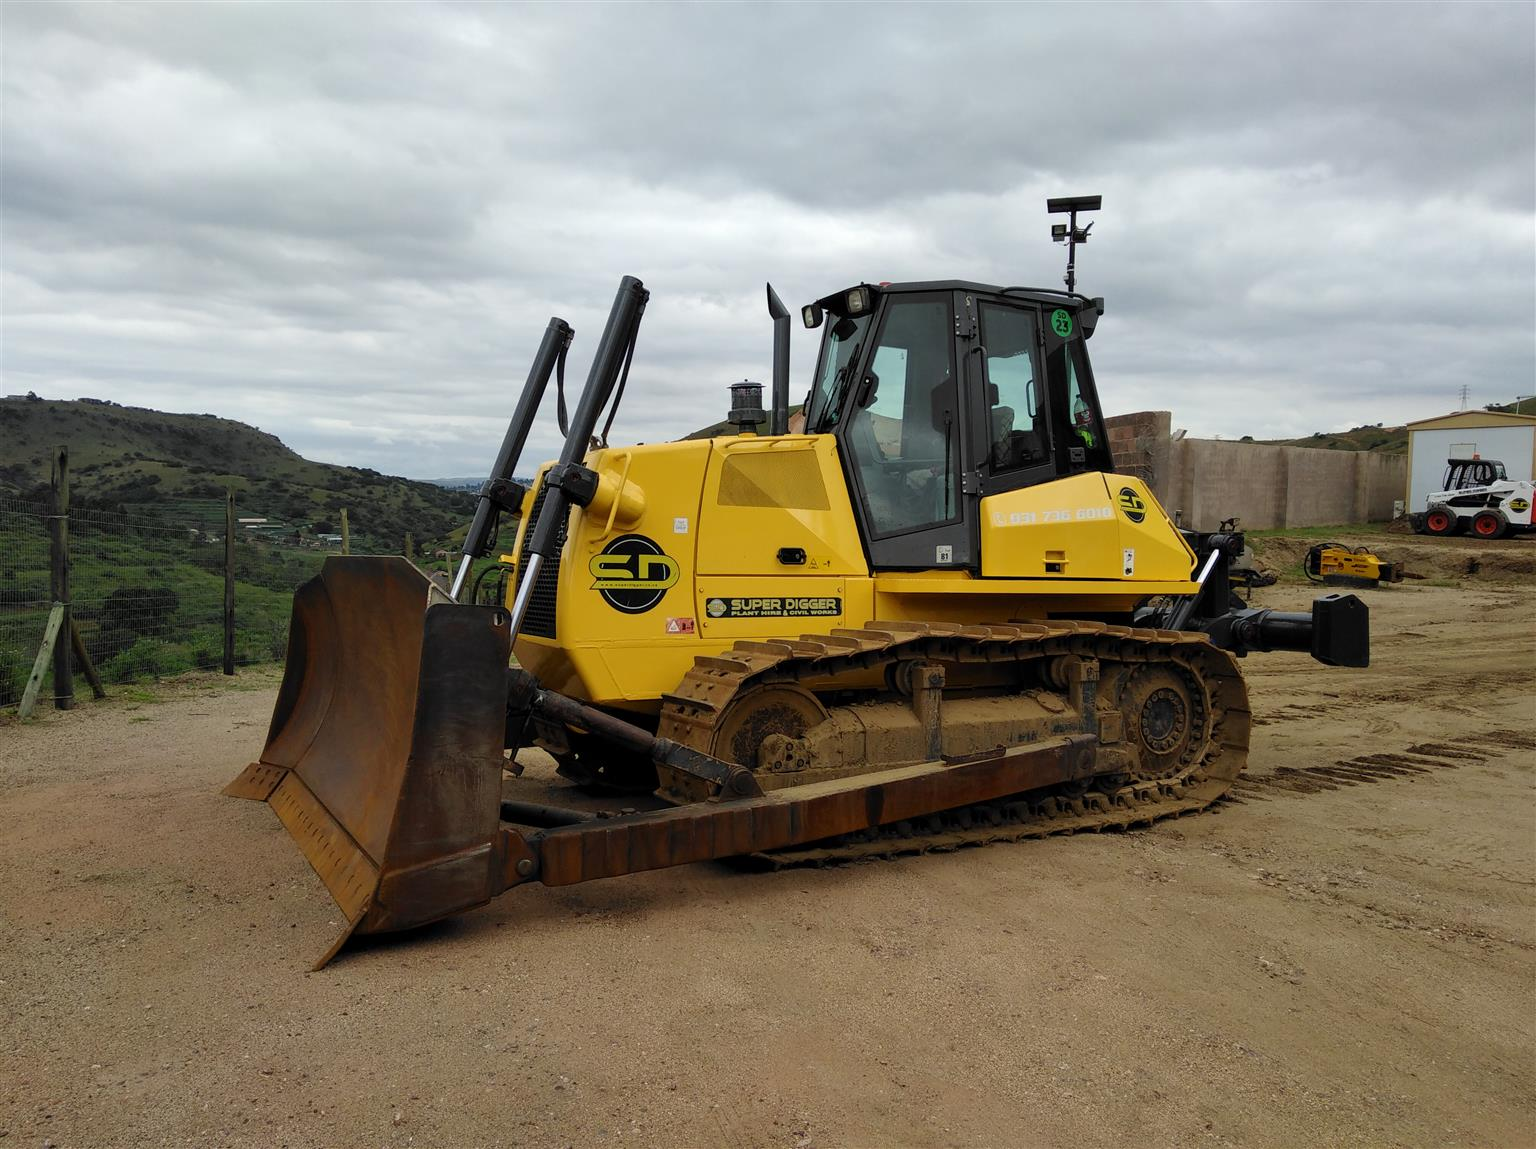 Bulldozers For Sale >> 2 X 2008 New Holland D 180 Bulldozers For Sale Junk Mail